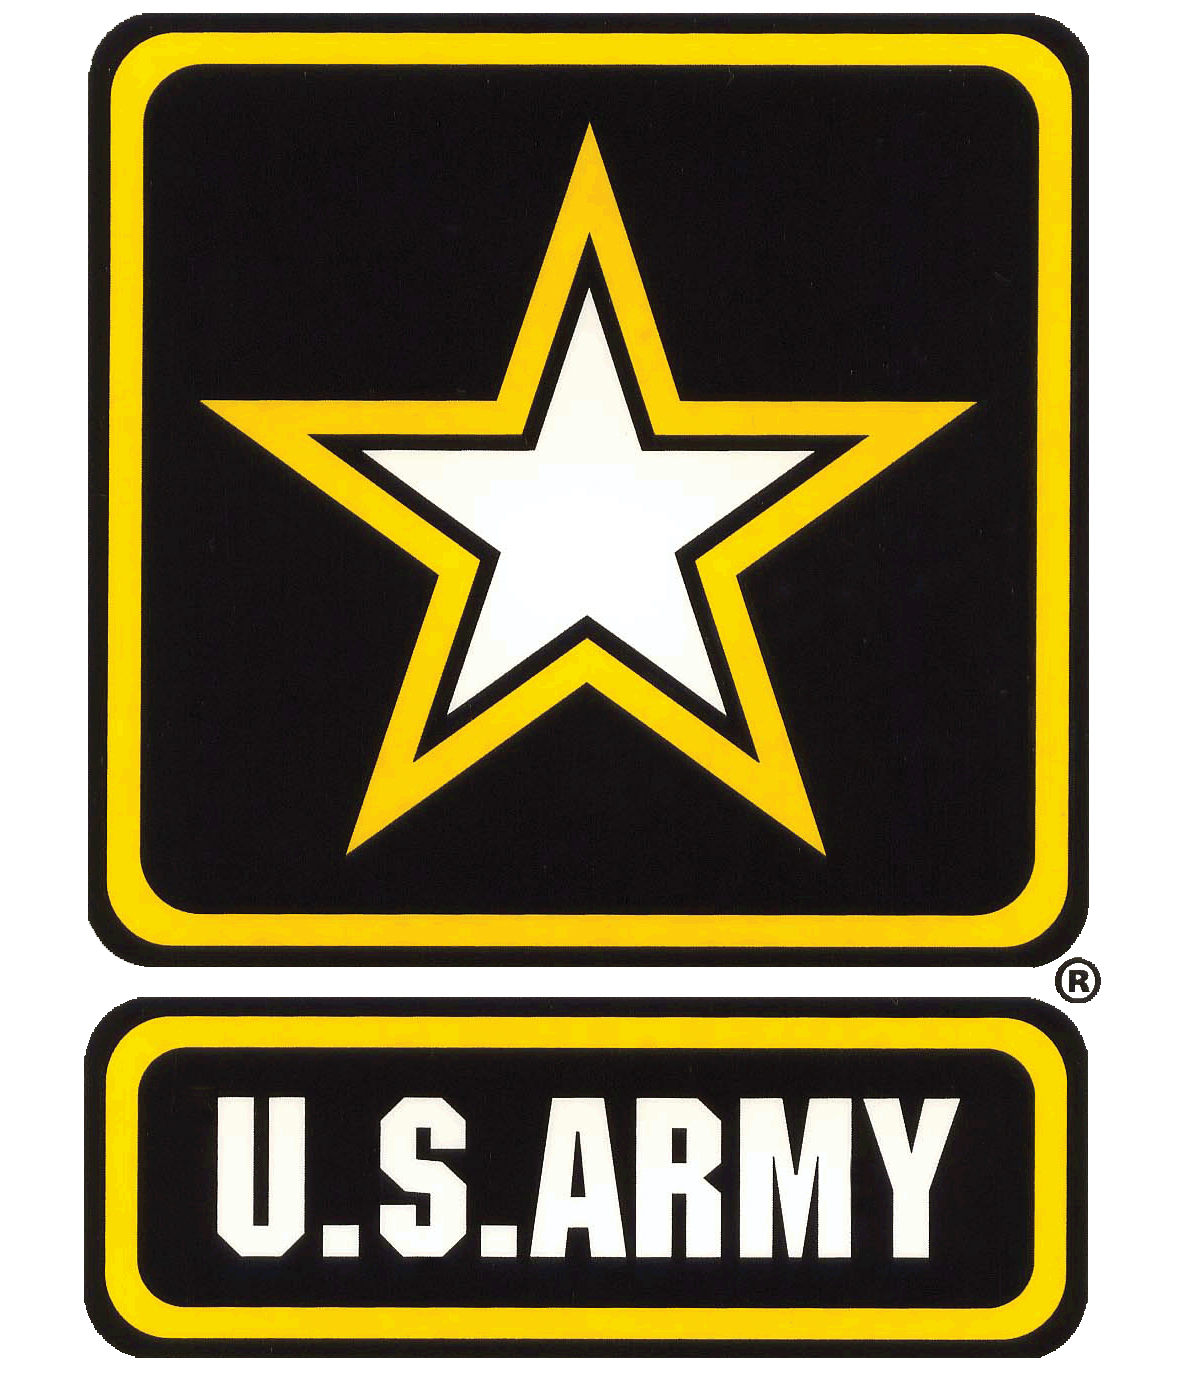 png royalty free library Army logo clipart. Afc transportation us.